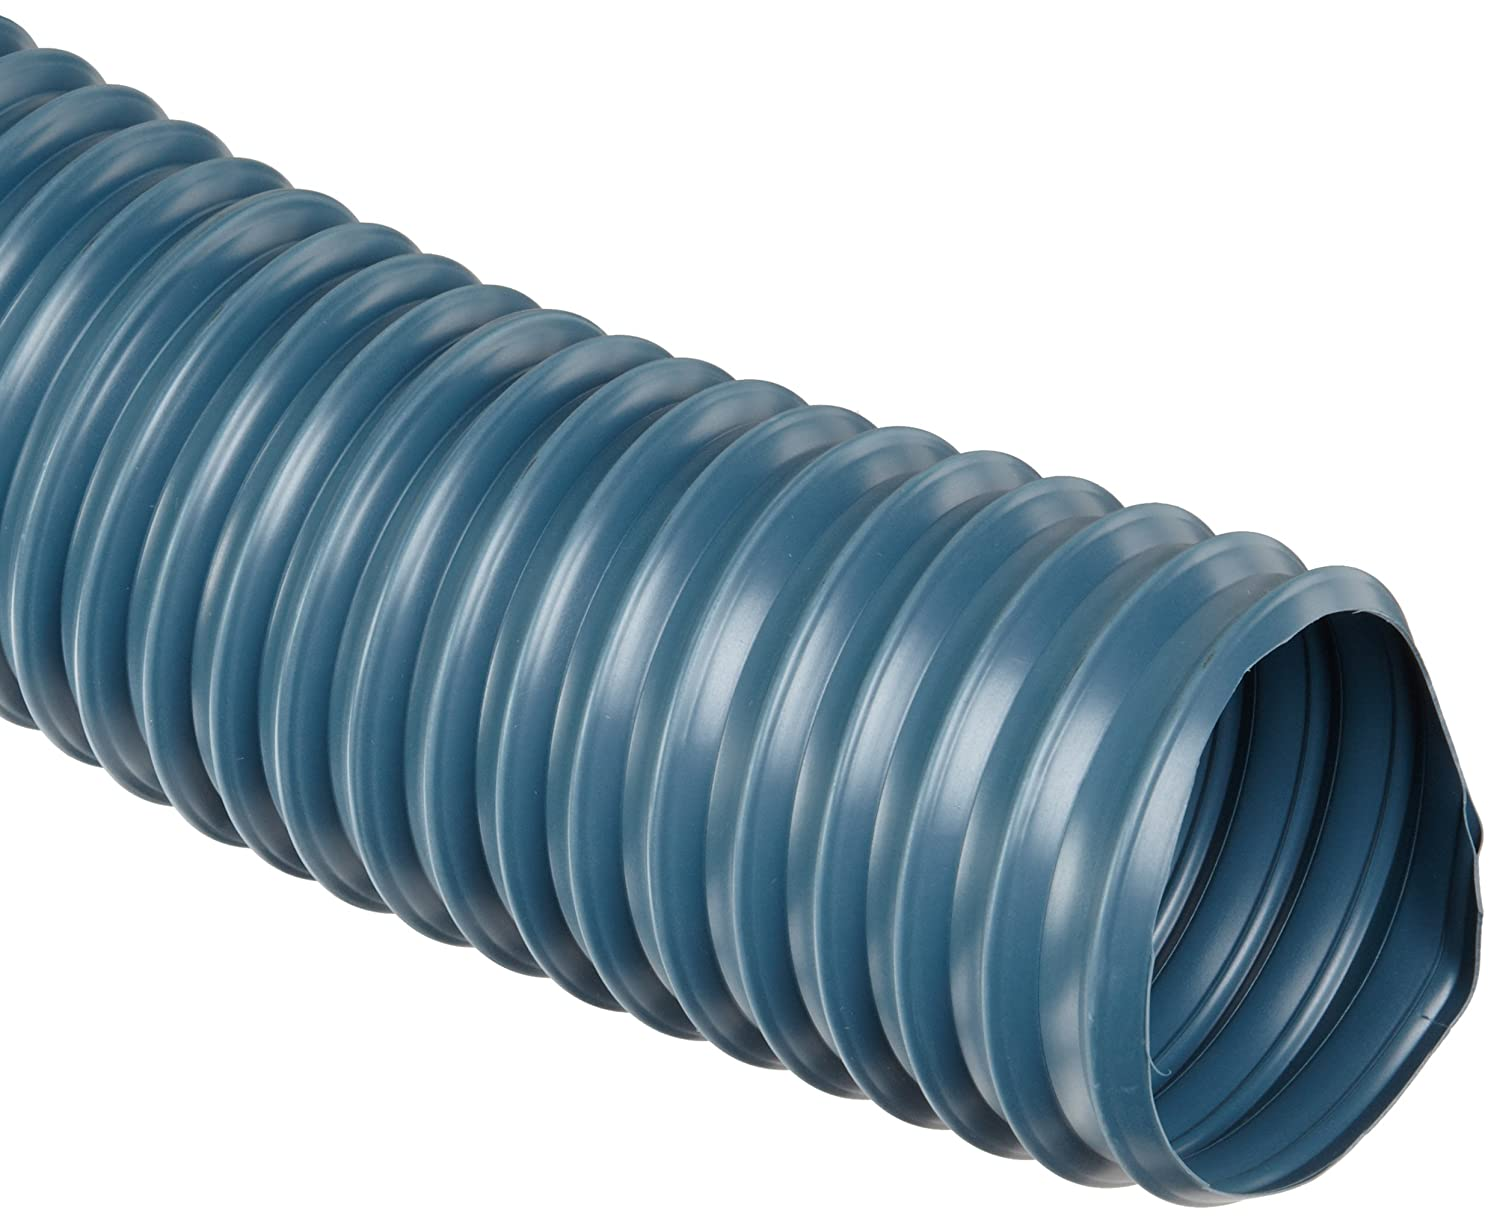 Flexadux R-2 PVC Duct Hose, Blue, For Use With Air, Fume FLECW